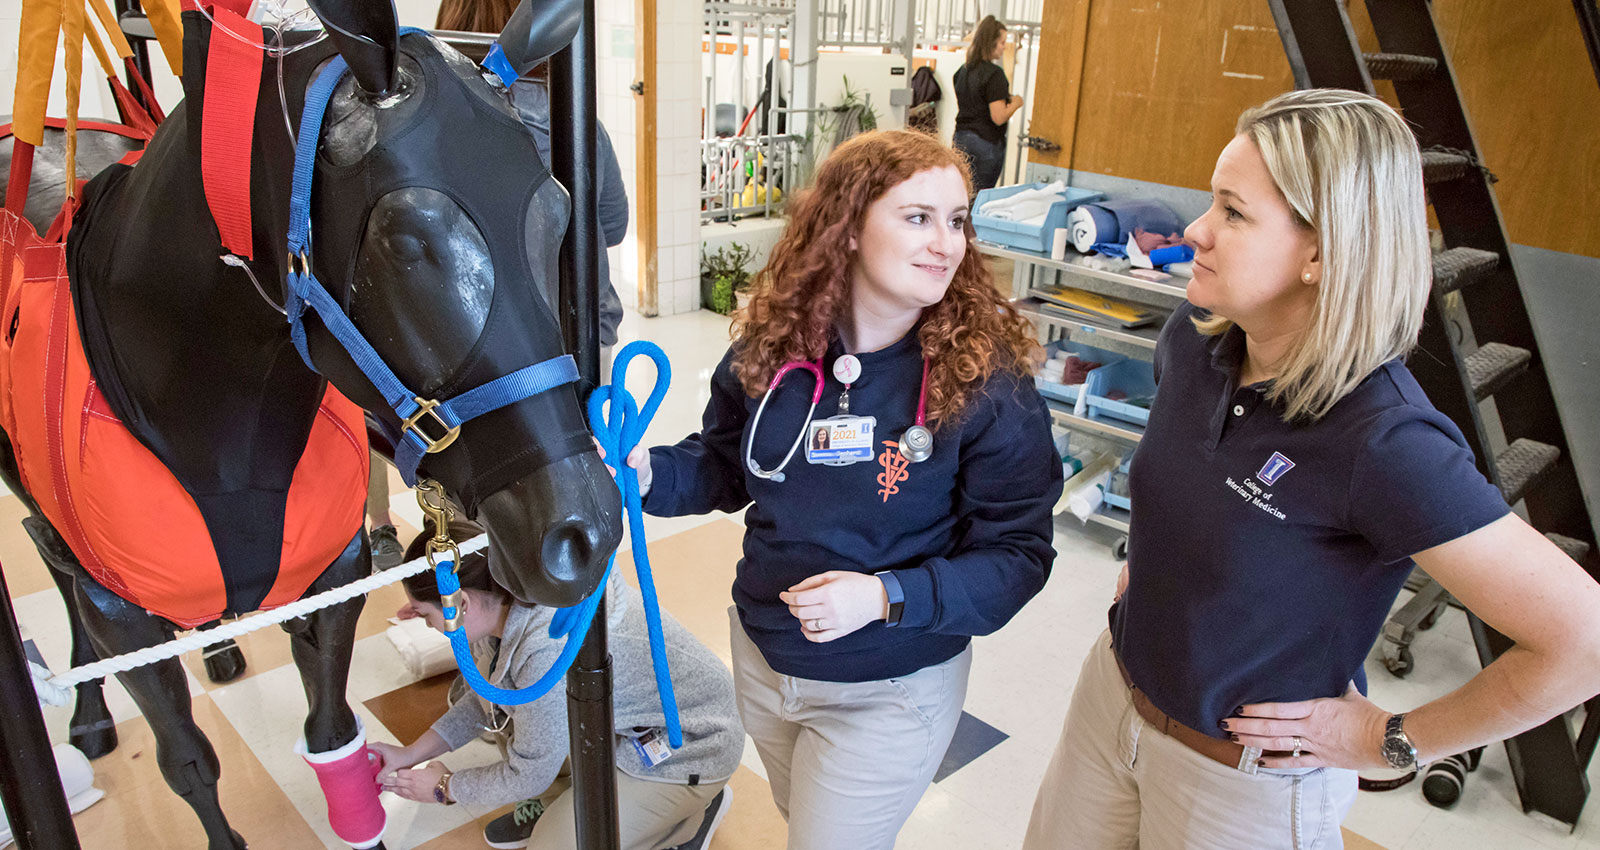 [Dr. Lori Madsen works with veterinary students in the Clinical Skills Learning Center at Illinois]